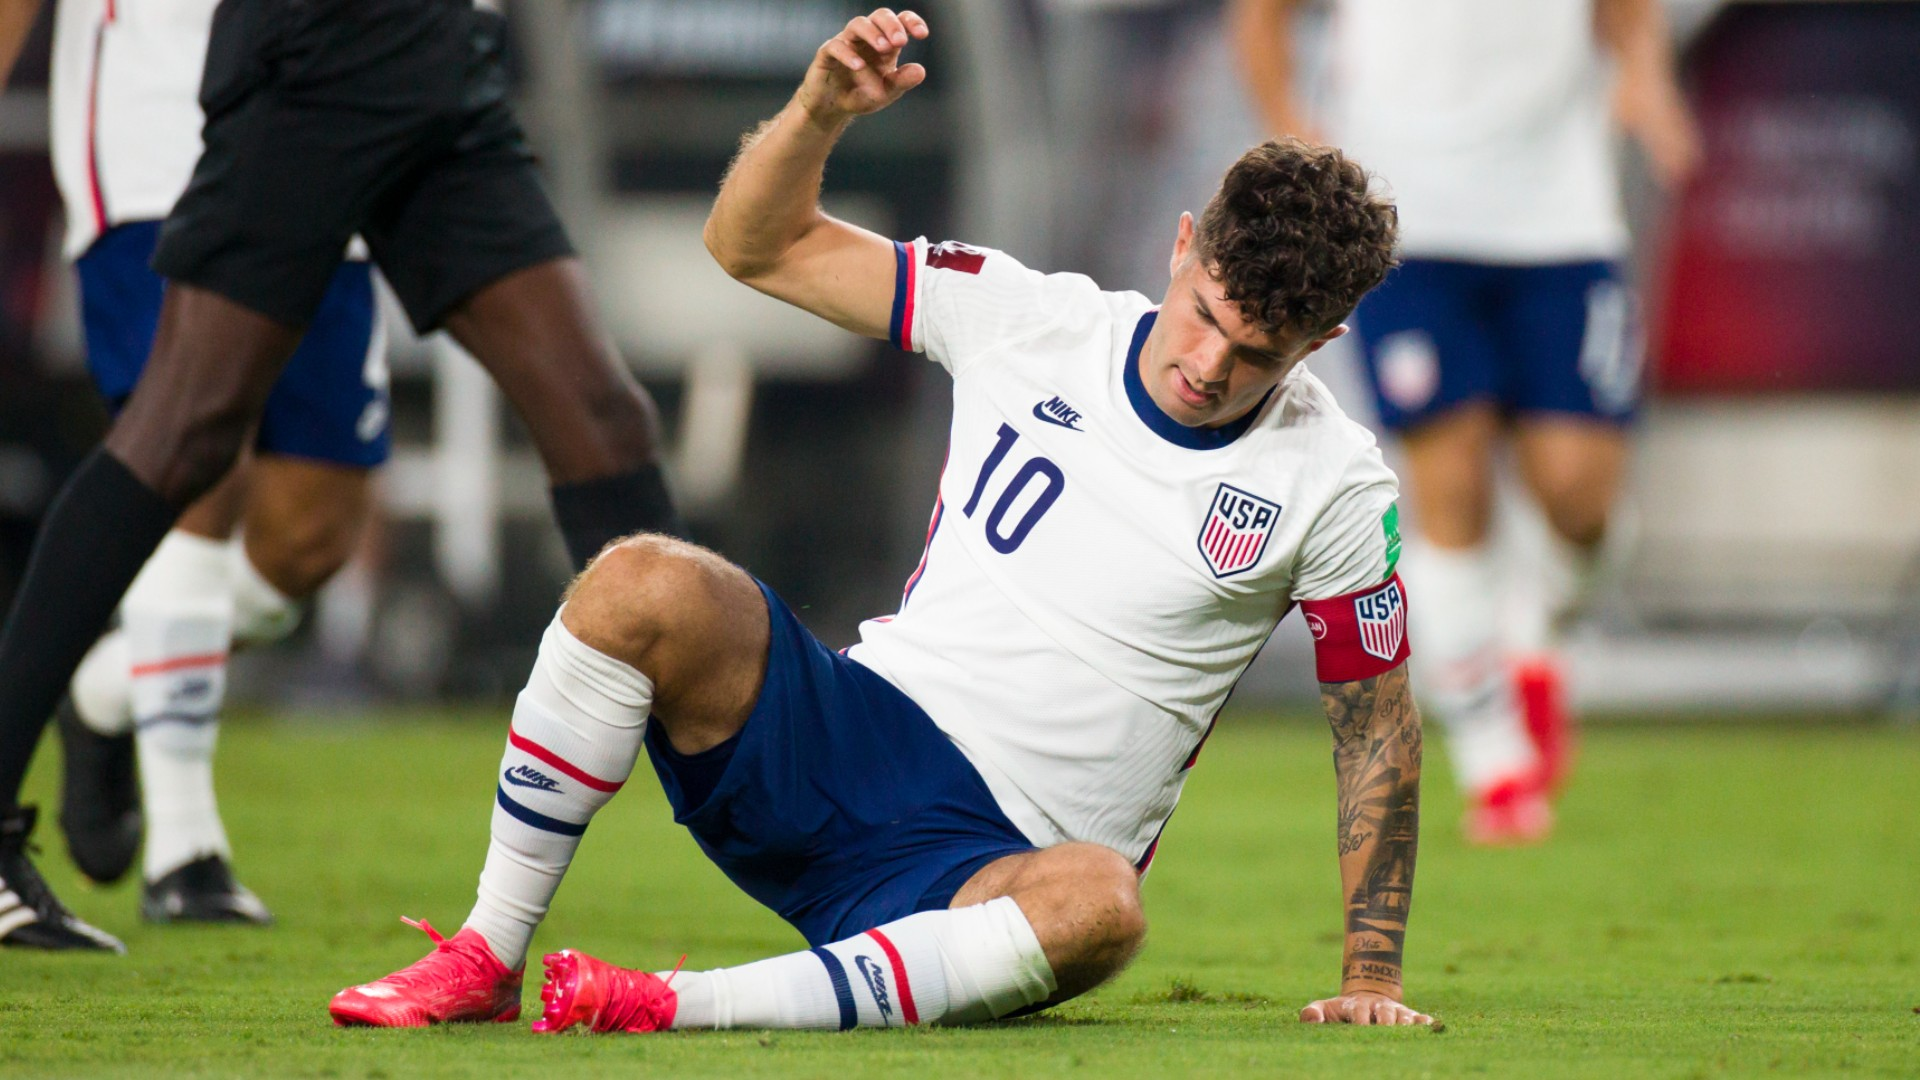 Pulisic 'really suffering' in Chelsea injury nightmare as Tuchel admits 'recovery is not happening' for USMNT star